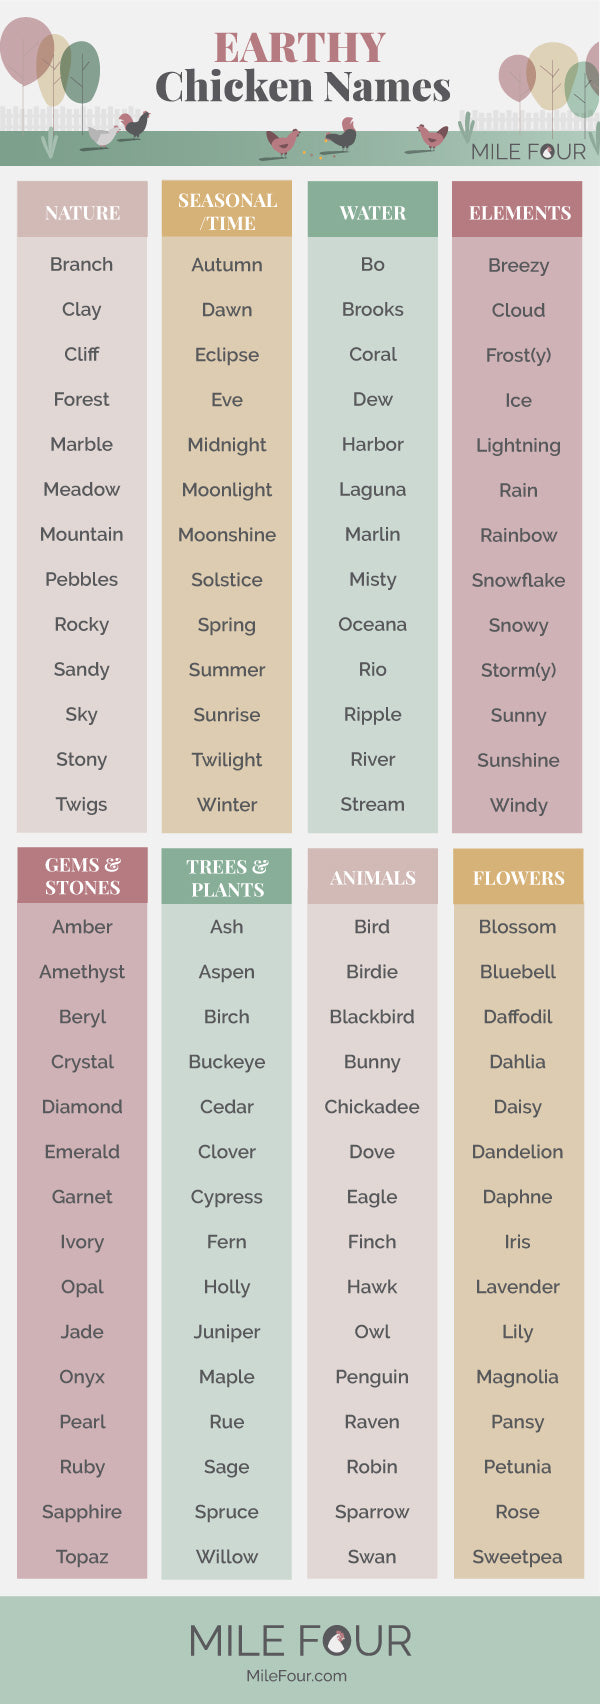 earthy chicken names